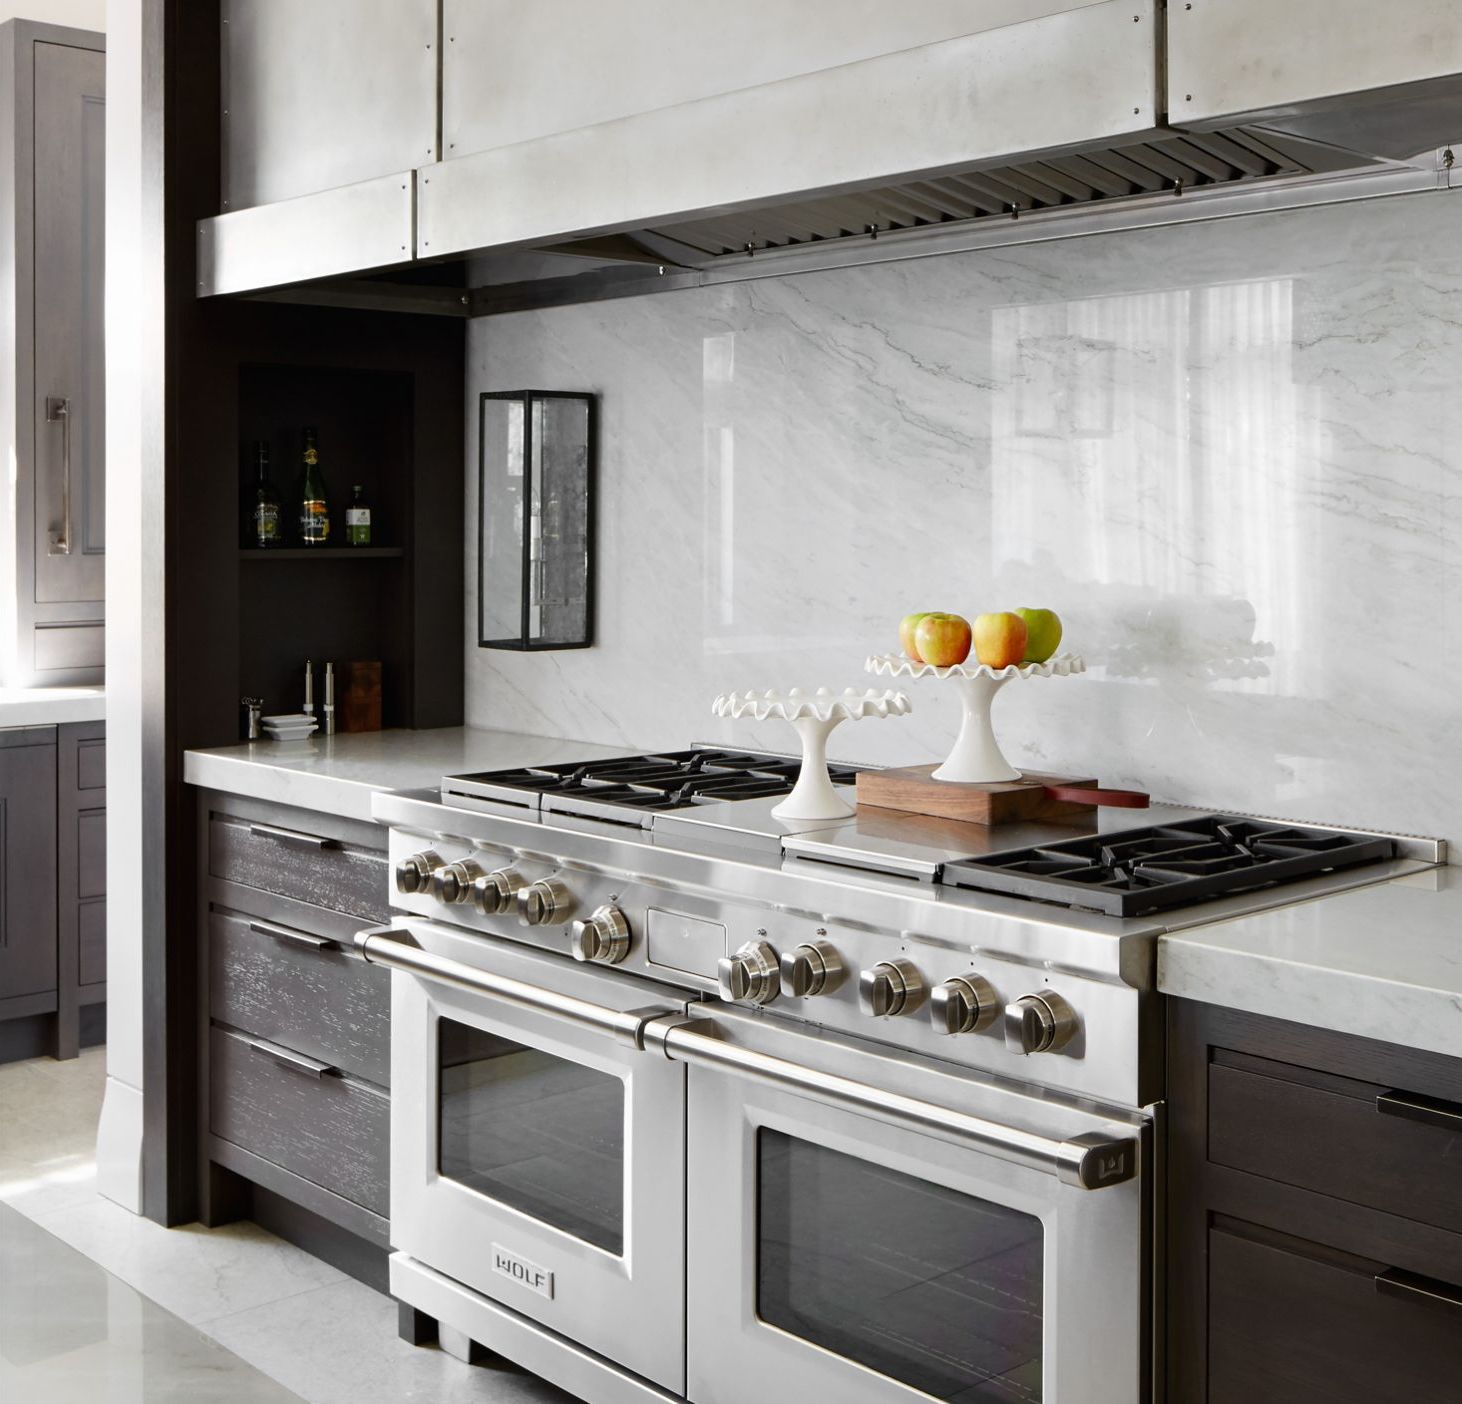 Oversized Hoods - Here's an example of a super wide vent hood with no wall cabinets - this a new clean look that is becoming more and more popular in today's modern and traditional kitchens.Design by O'Brien Harris Kitchens